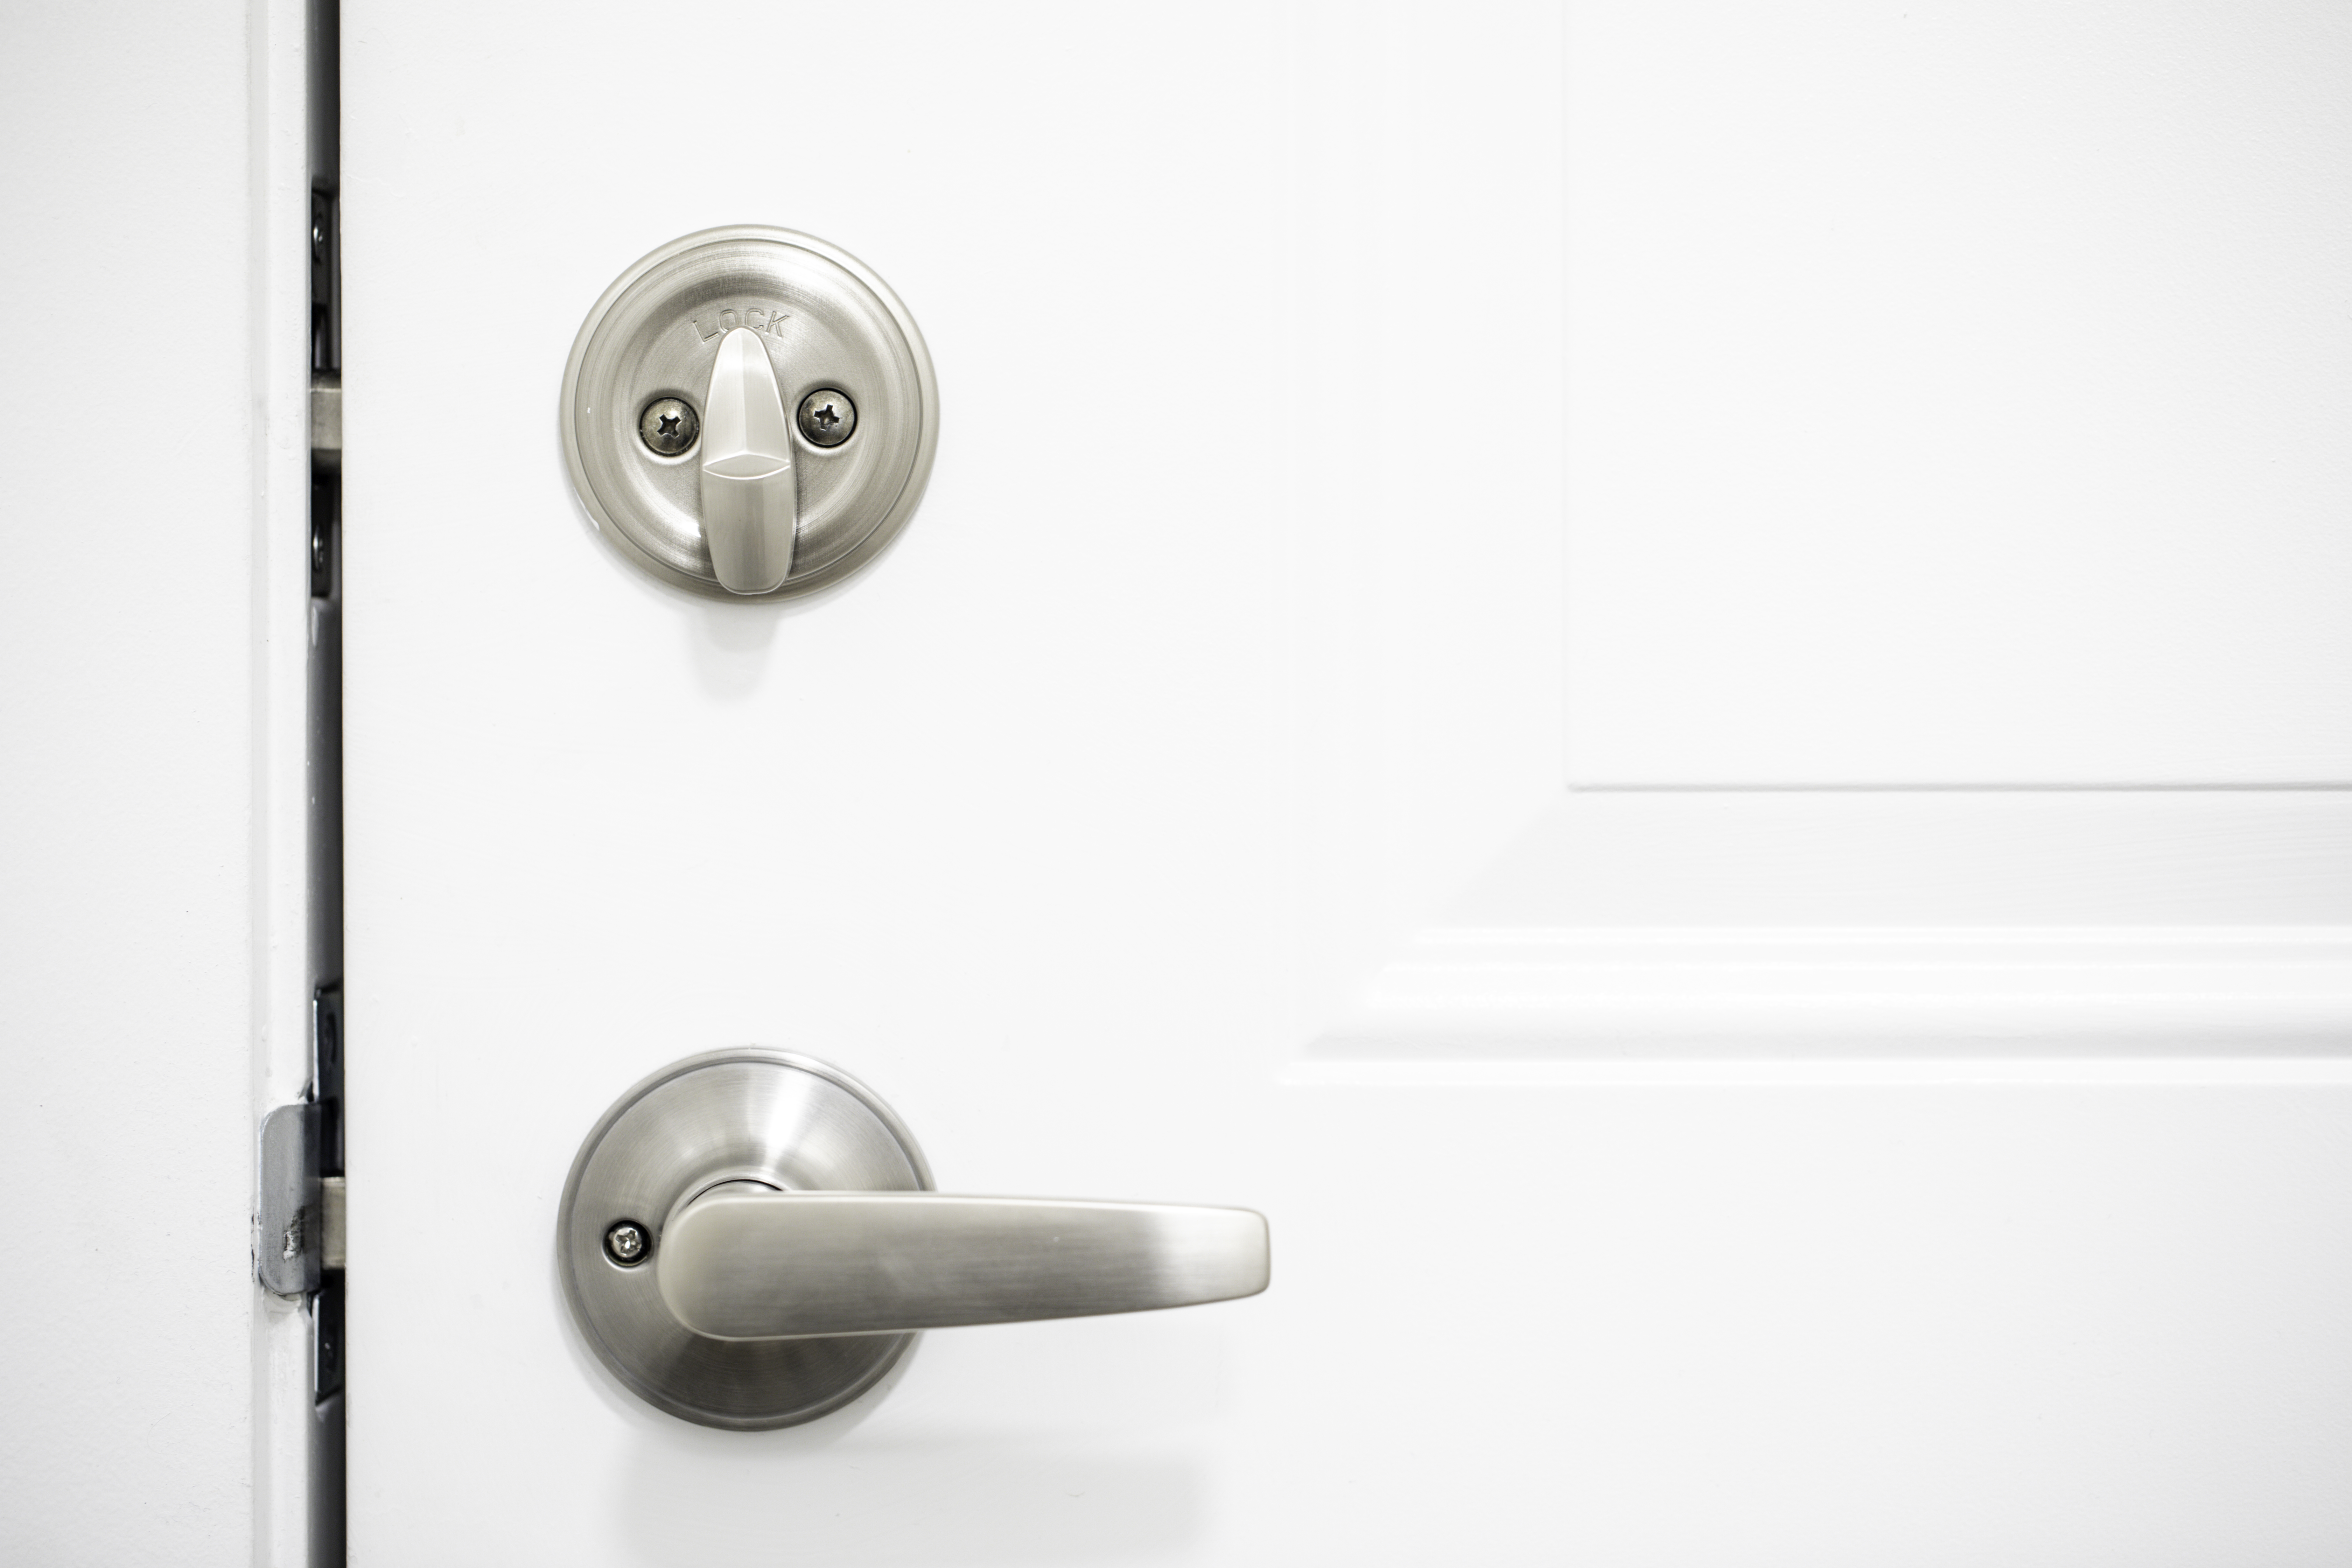 Enjoyable How To Replace A Deadbolt Thats Stuck In The Frame Home Home Interior And Landscaping Ologienasavecom